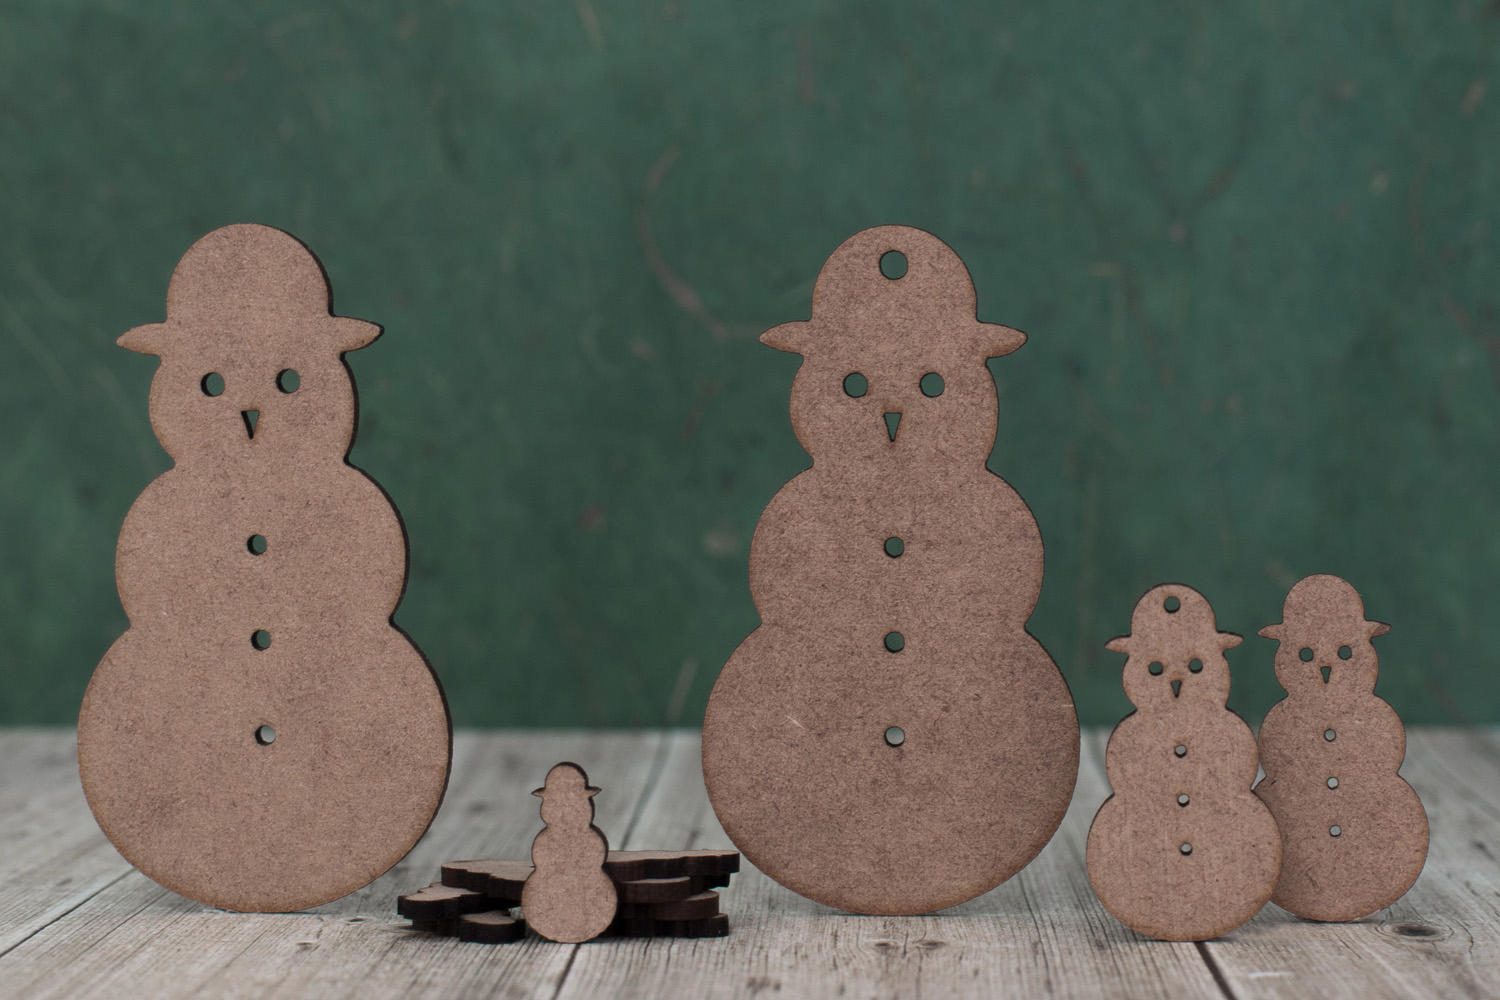 Group of laser cut snowman shapes of various sizes